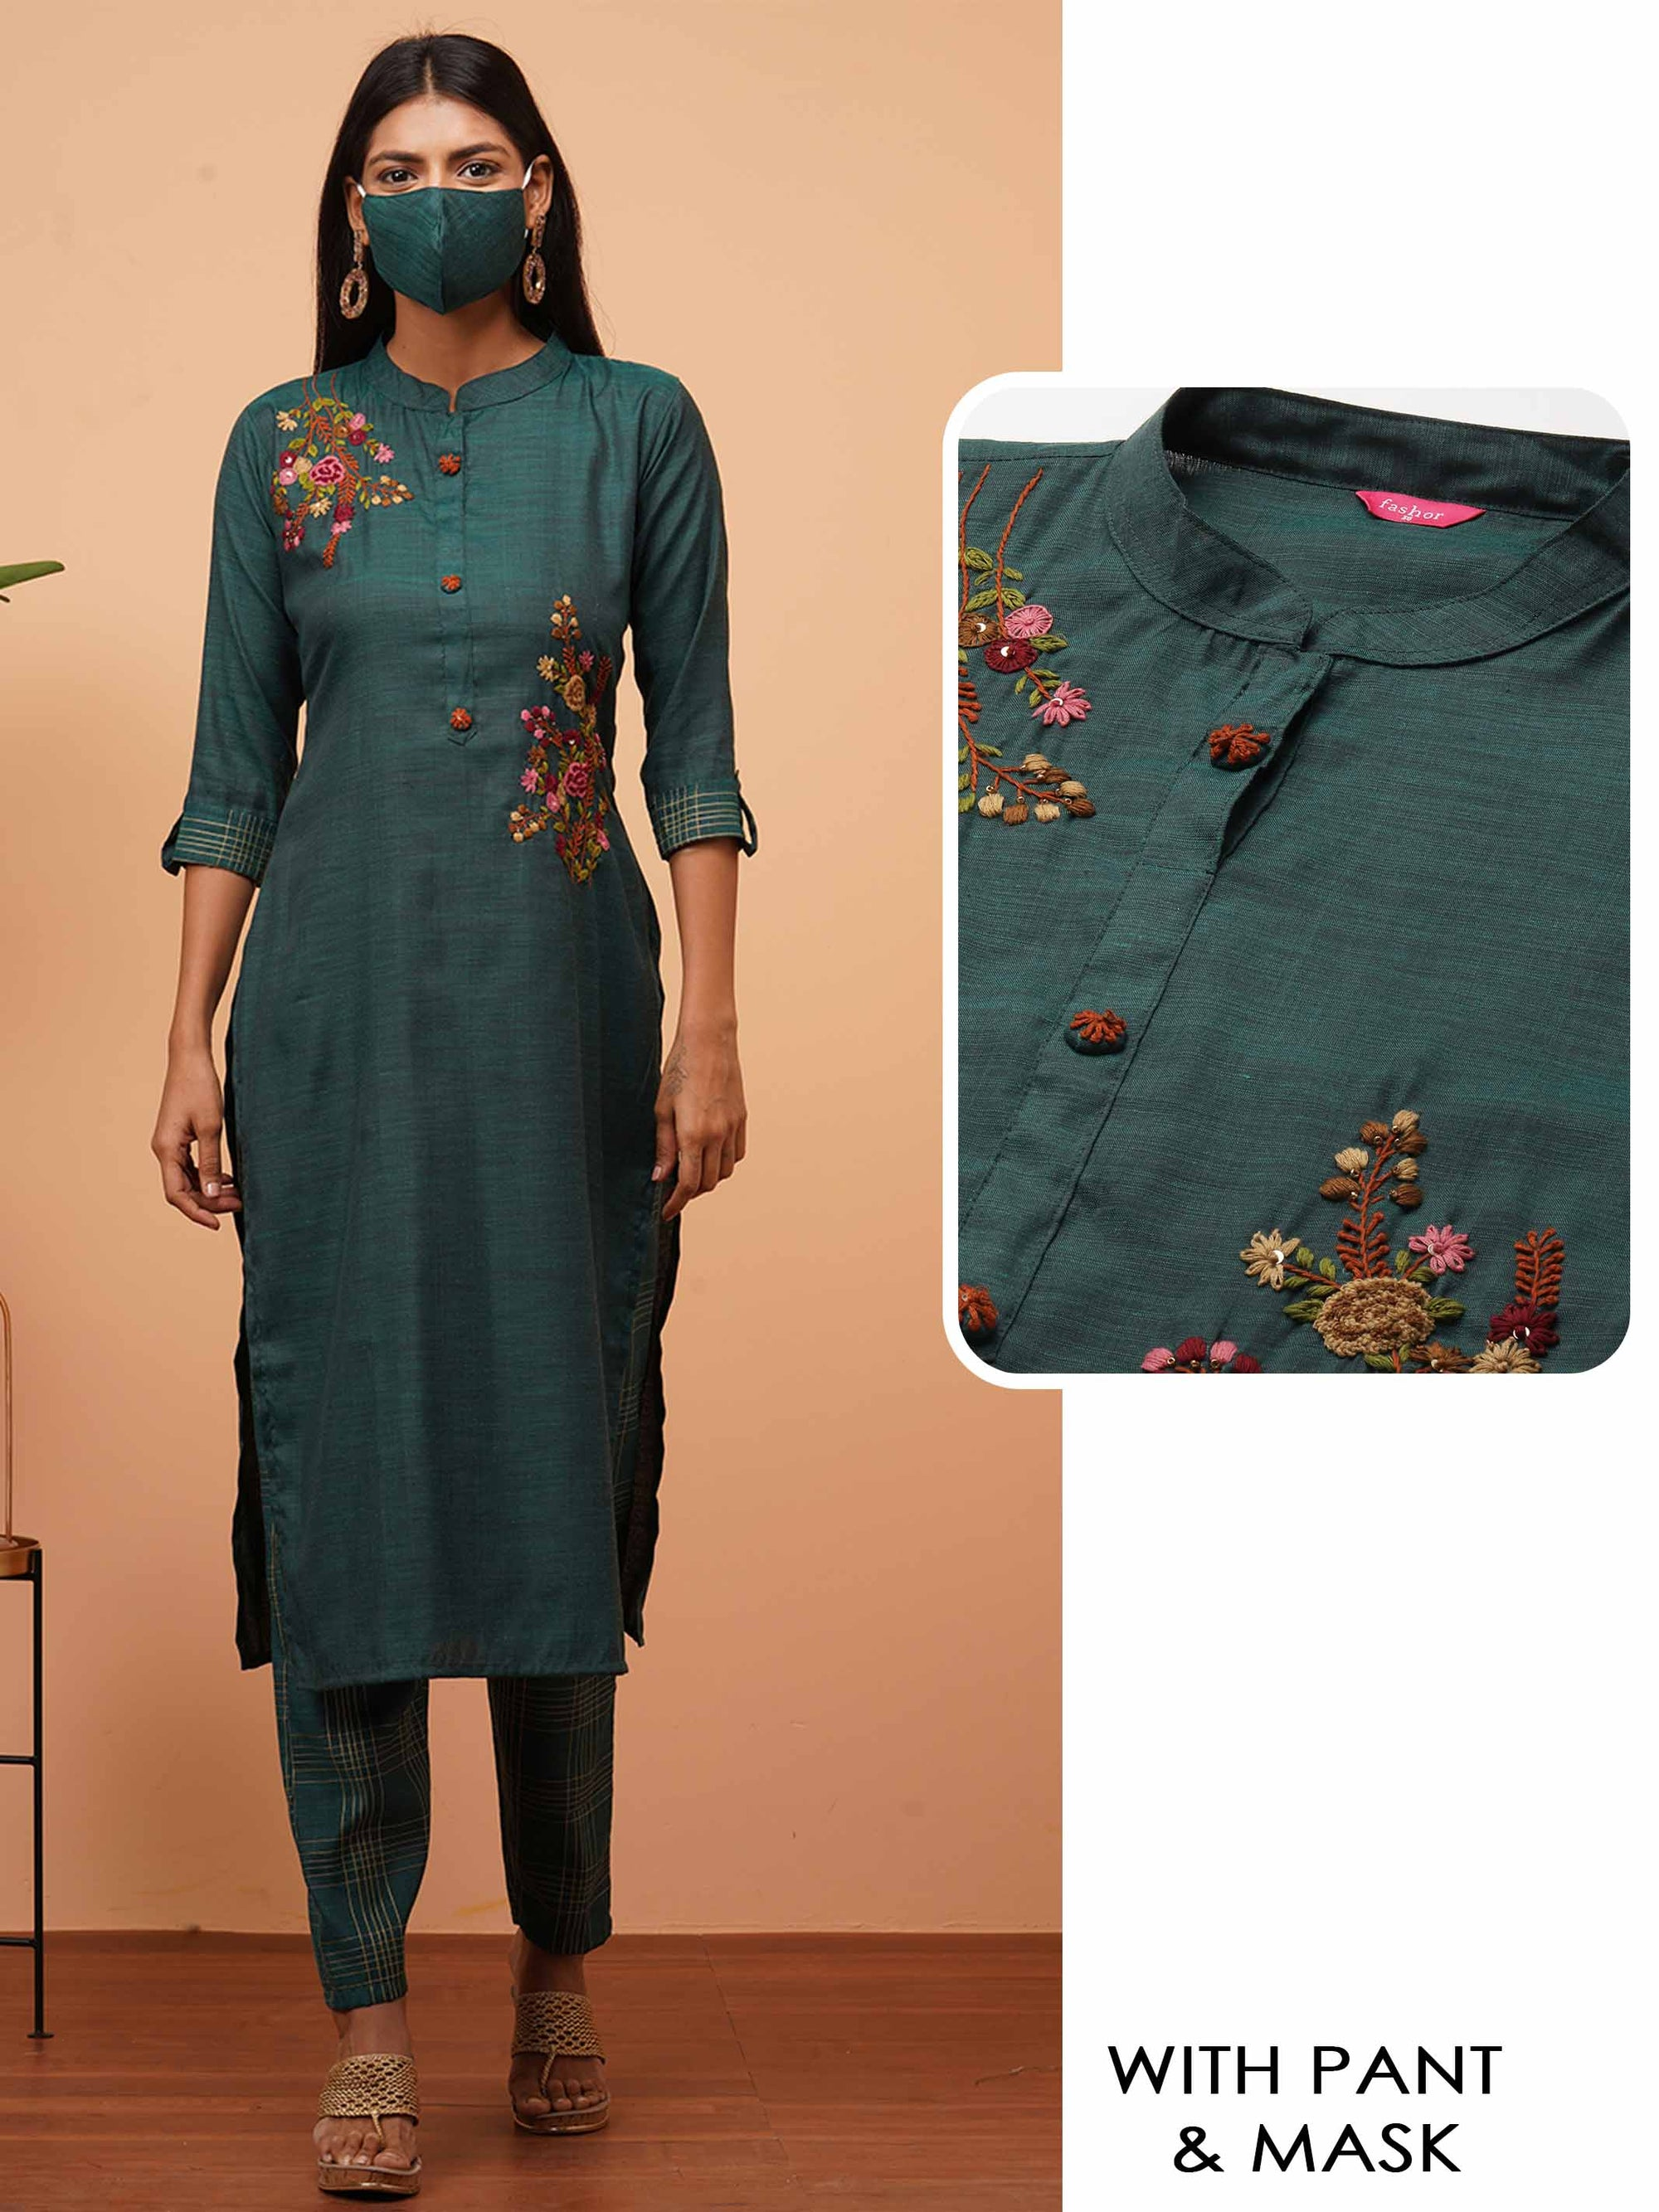 Floral Hand Embroidered Kurta with Checkered Pant & 2-Ply Mask - Emerald Green